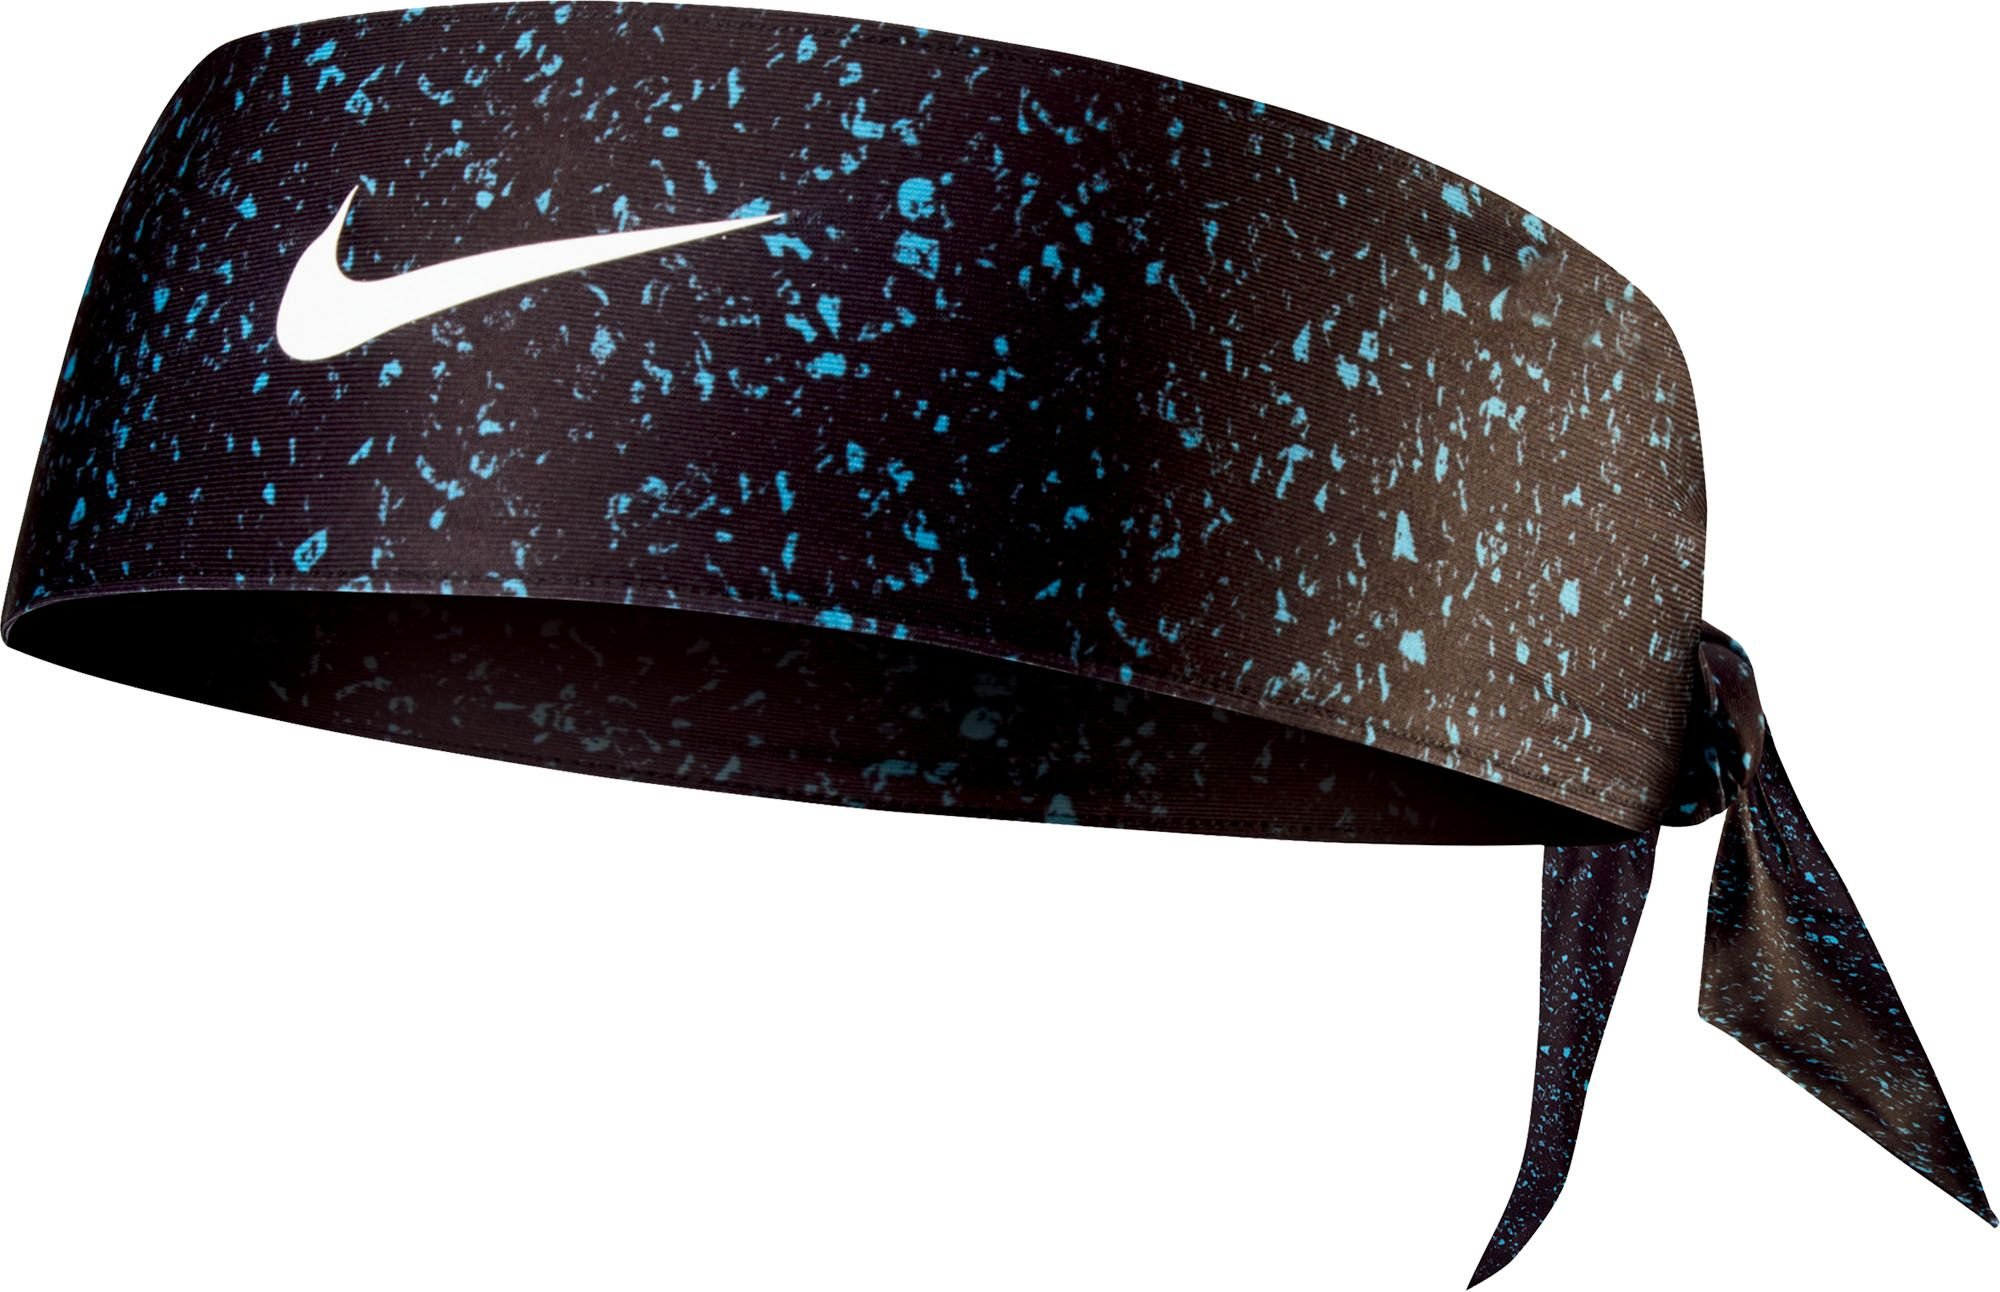 Buy Nike Dri-Fit Head Tie 2.0 in Cheap Price on Alibaba.com 9d668a34a93